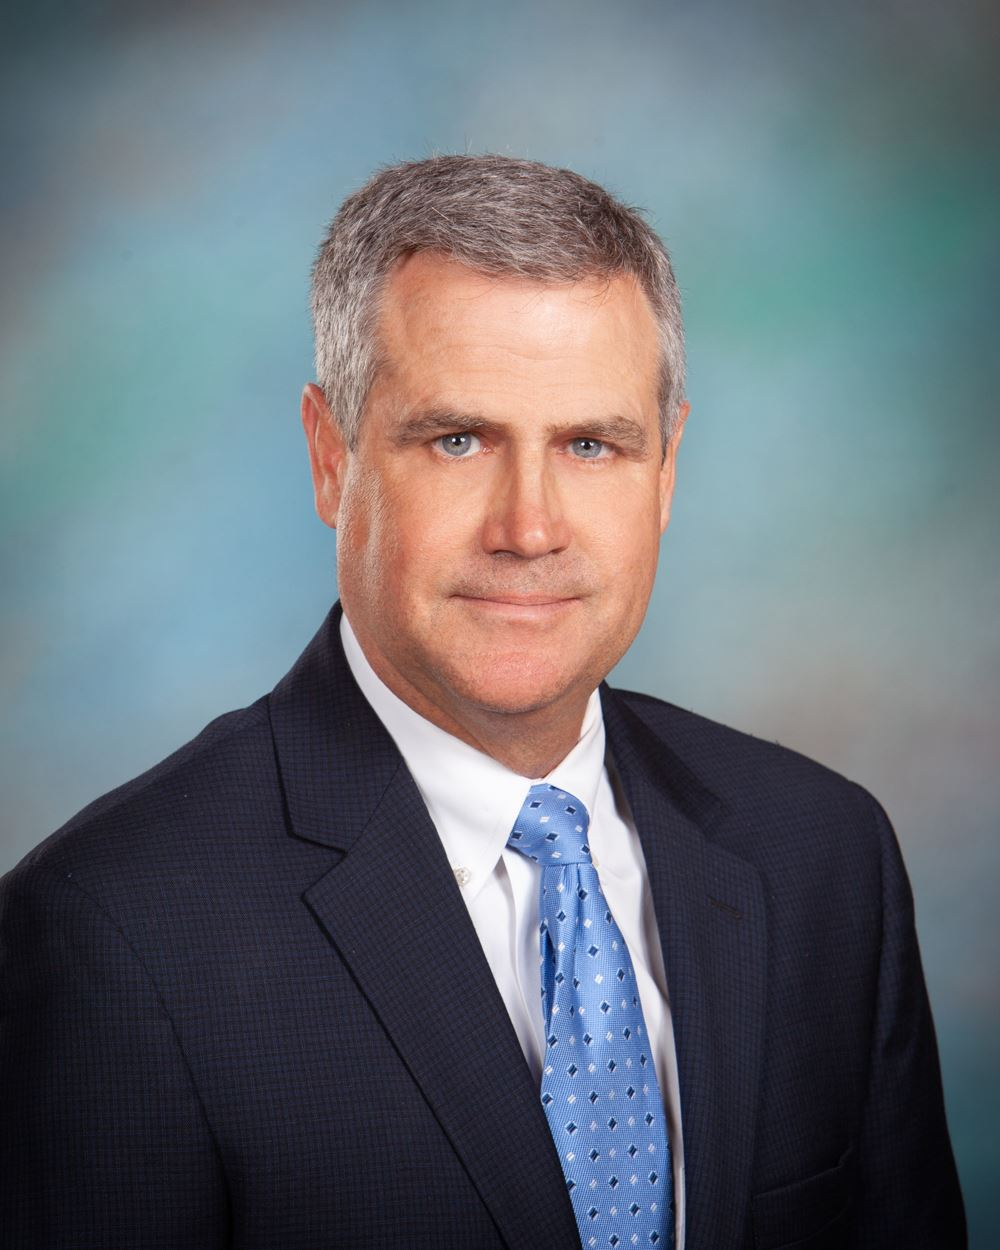 Photograph of City Manager Greg Porter